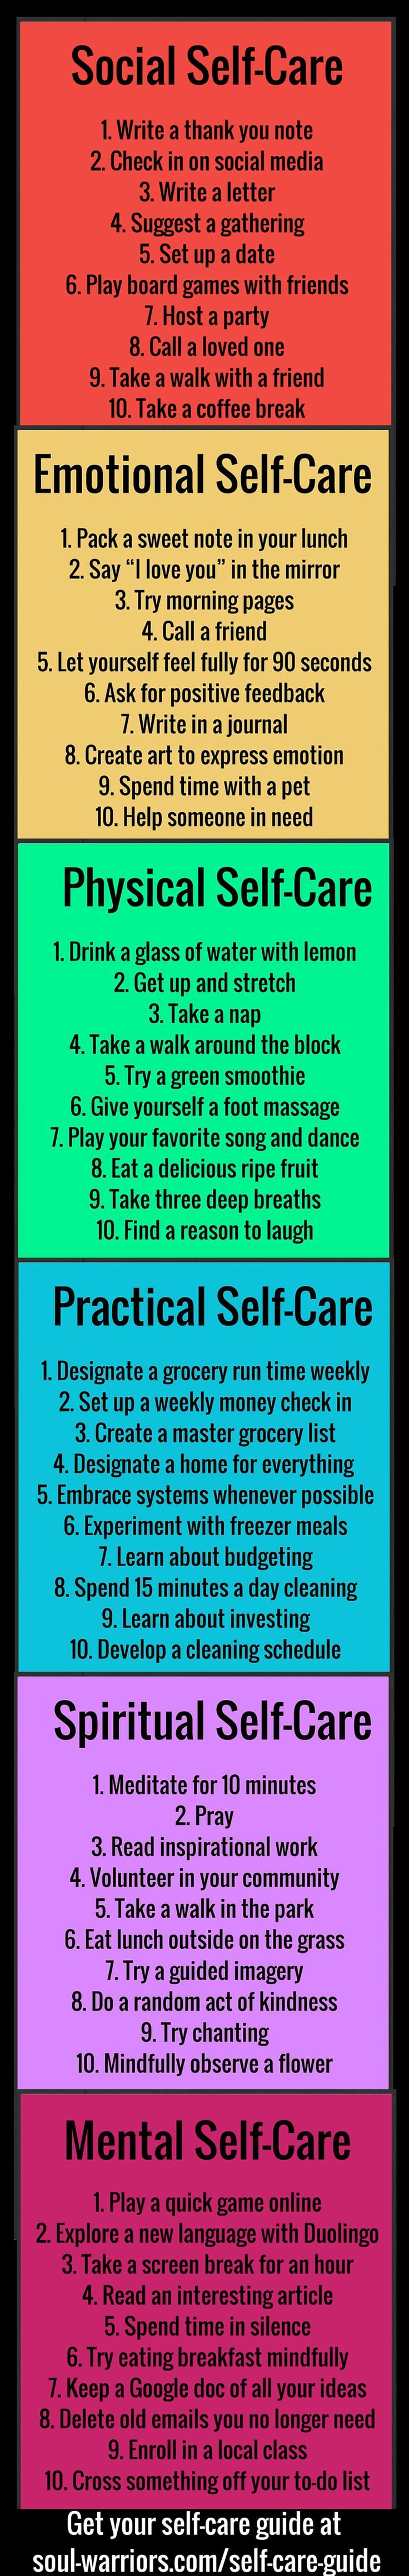 Two days without celexa.doc - Step Up Your Self Care With This Free Printable Guide Click Through To Http